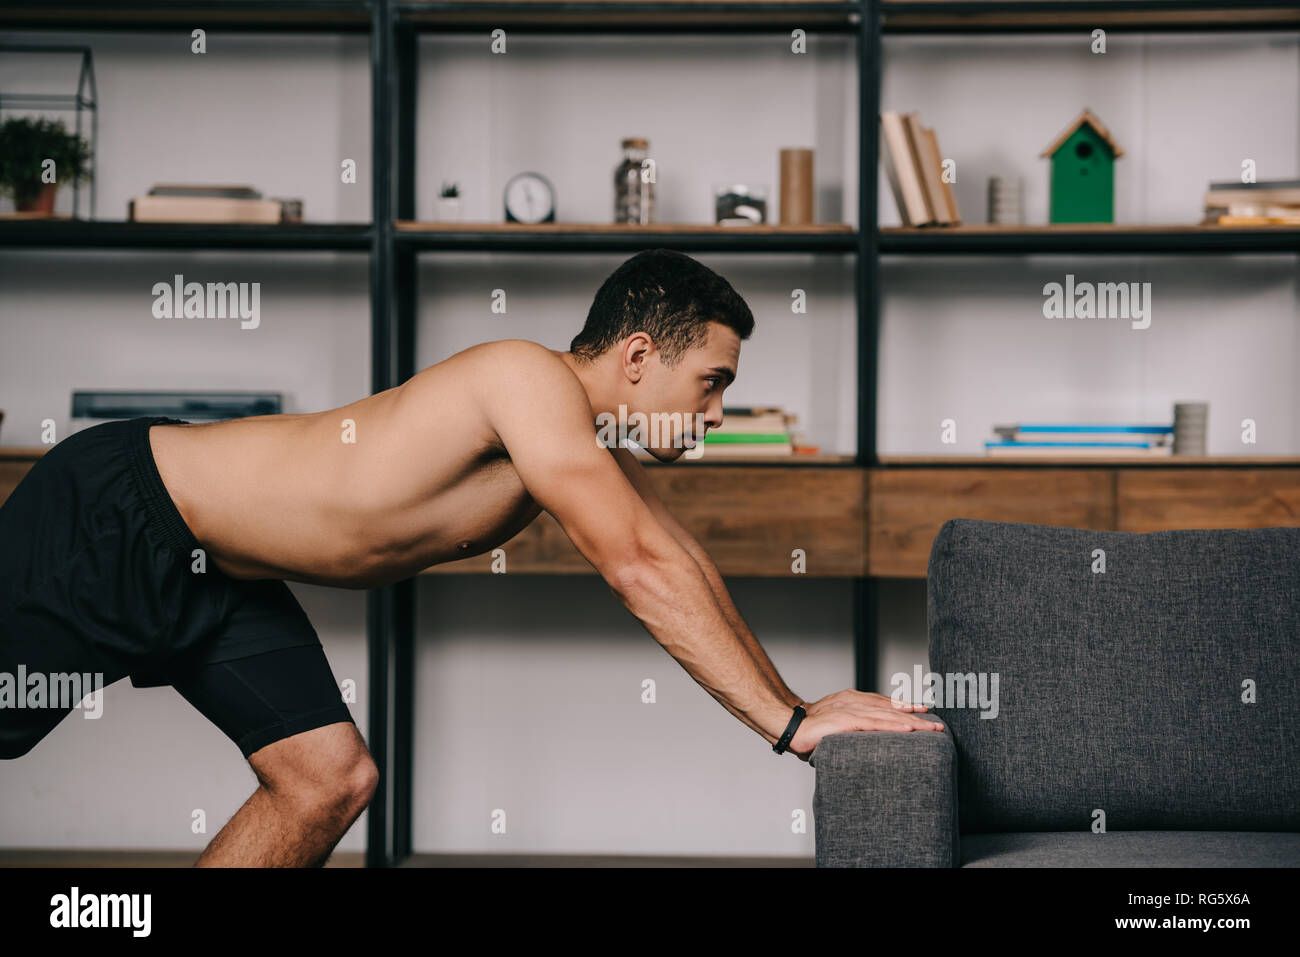 Sofa Workout Strong Mixed Race Man Workout Near Sofa In Living Room Stock Photo